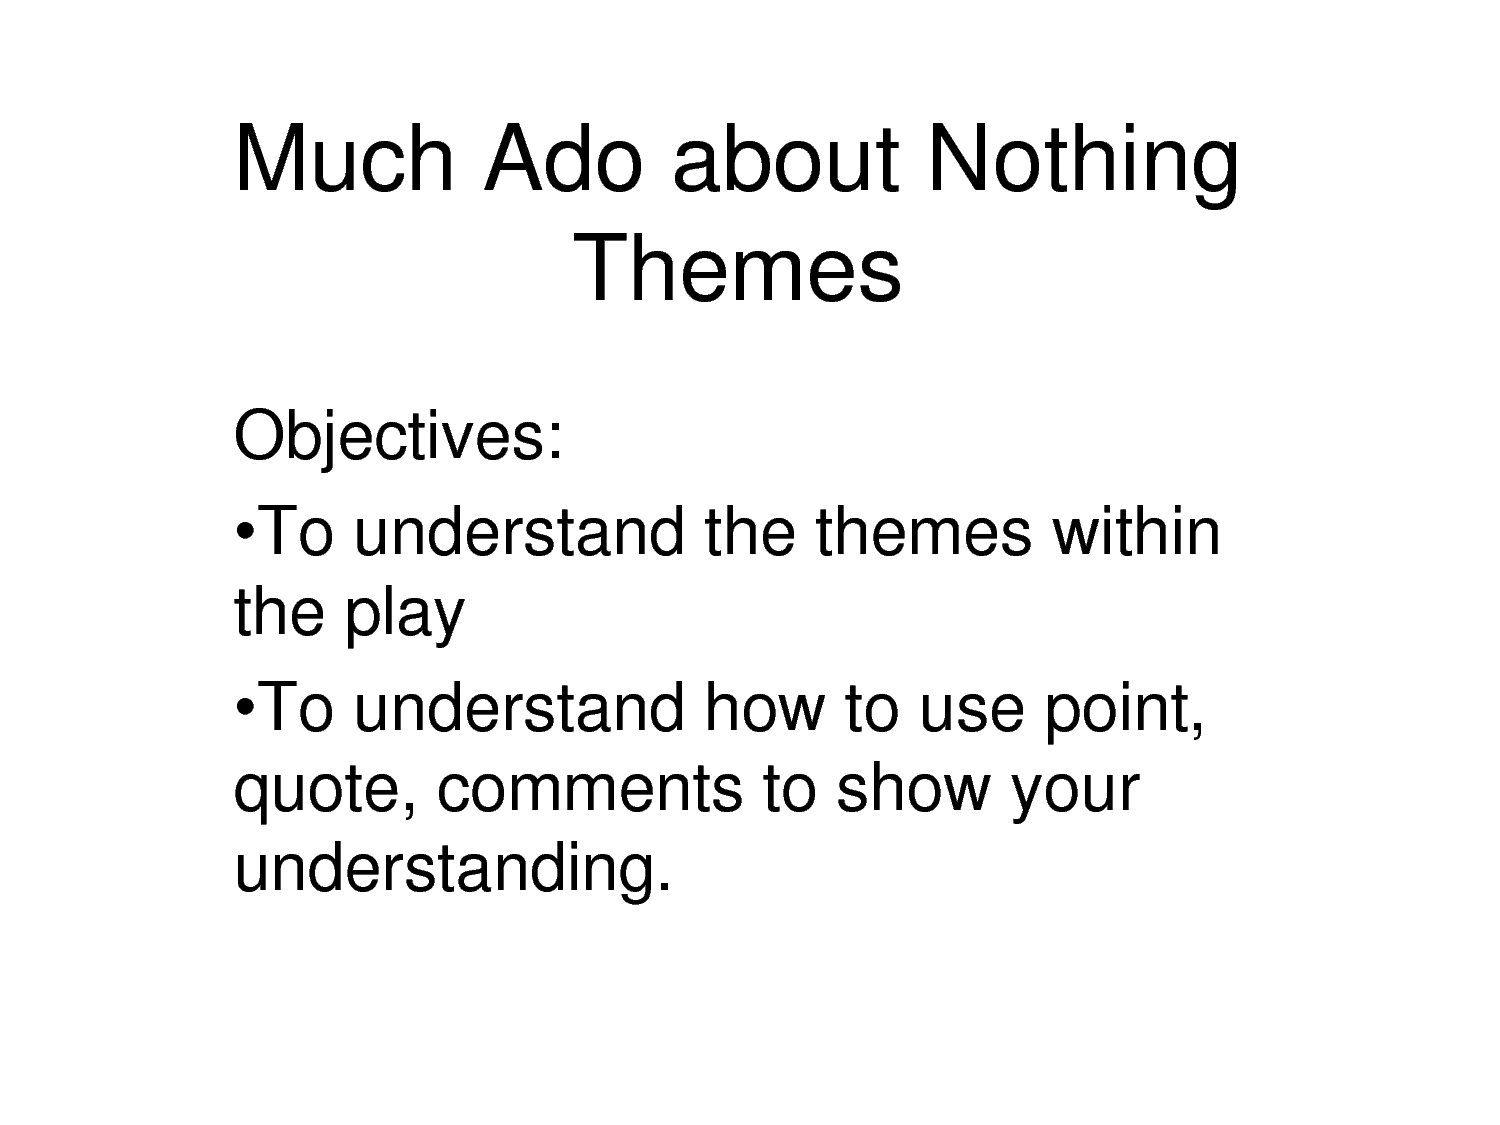 beatrice and benedicks relationship in much ado about nothing essay The first time he speaks in much ado about nothing benedick has noticed part of him really does desire a relationship beatrice quotes in much ado about nothing.